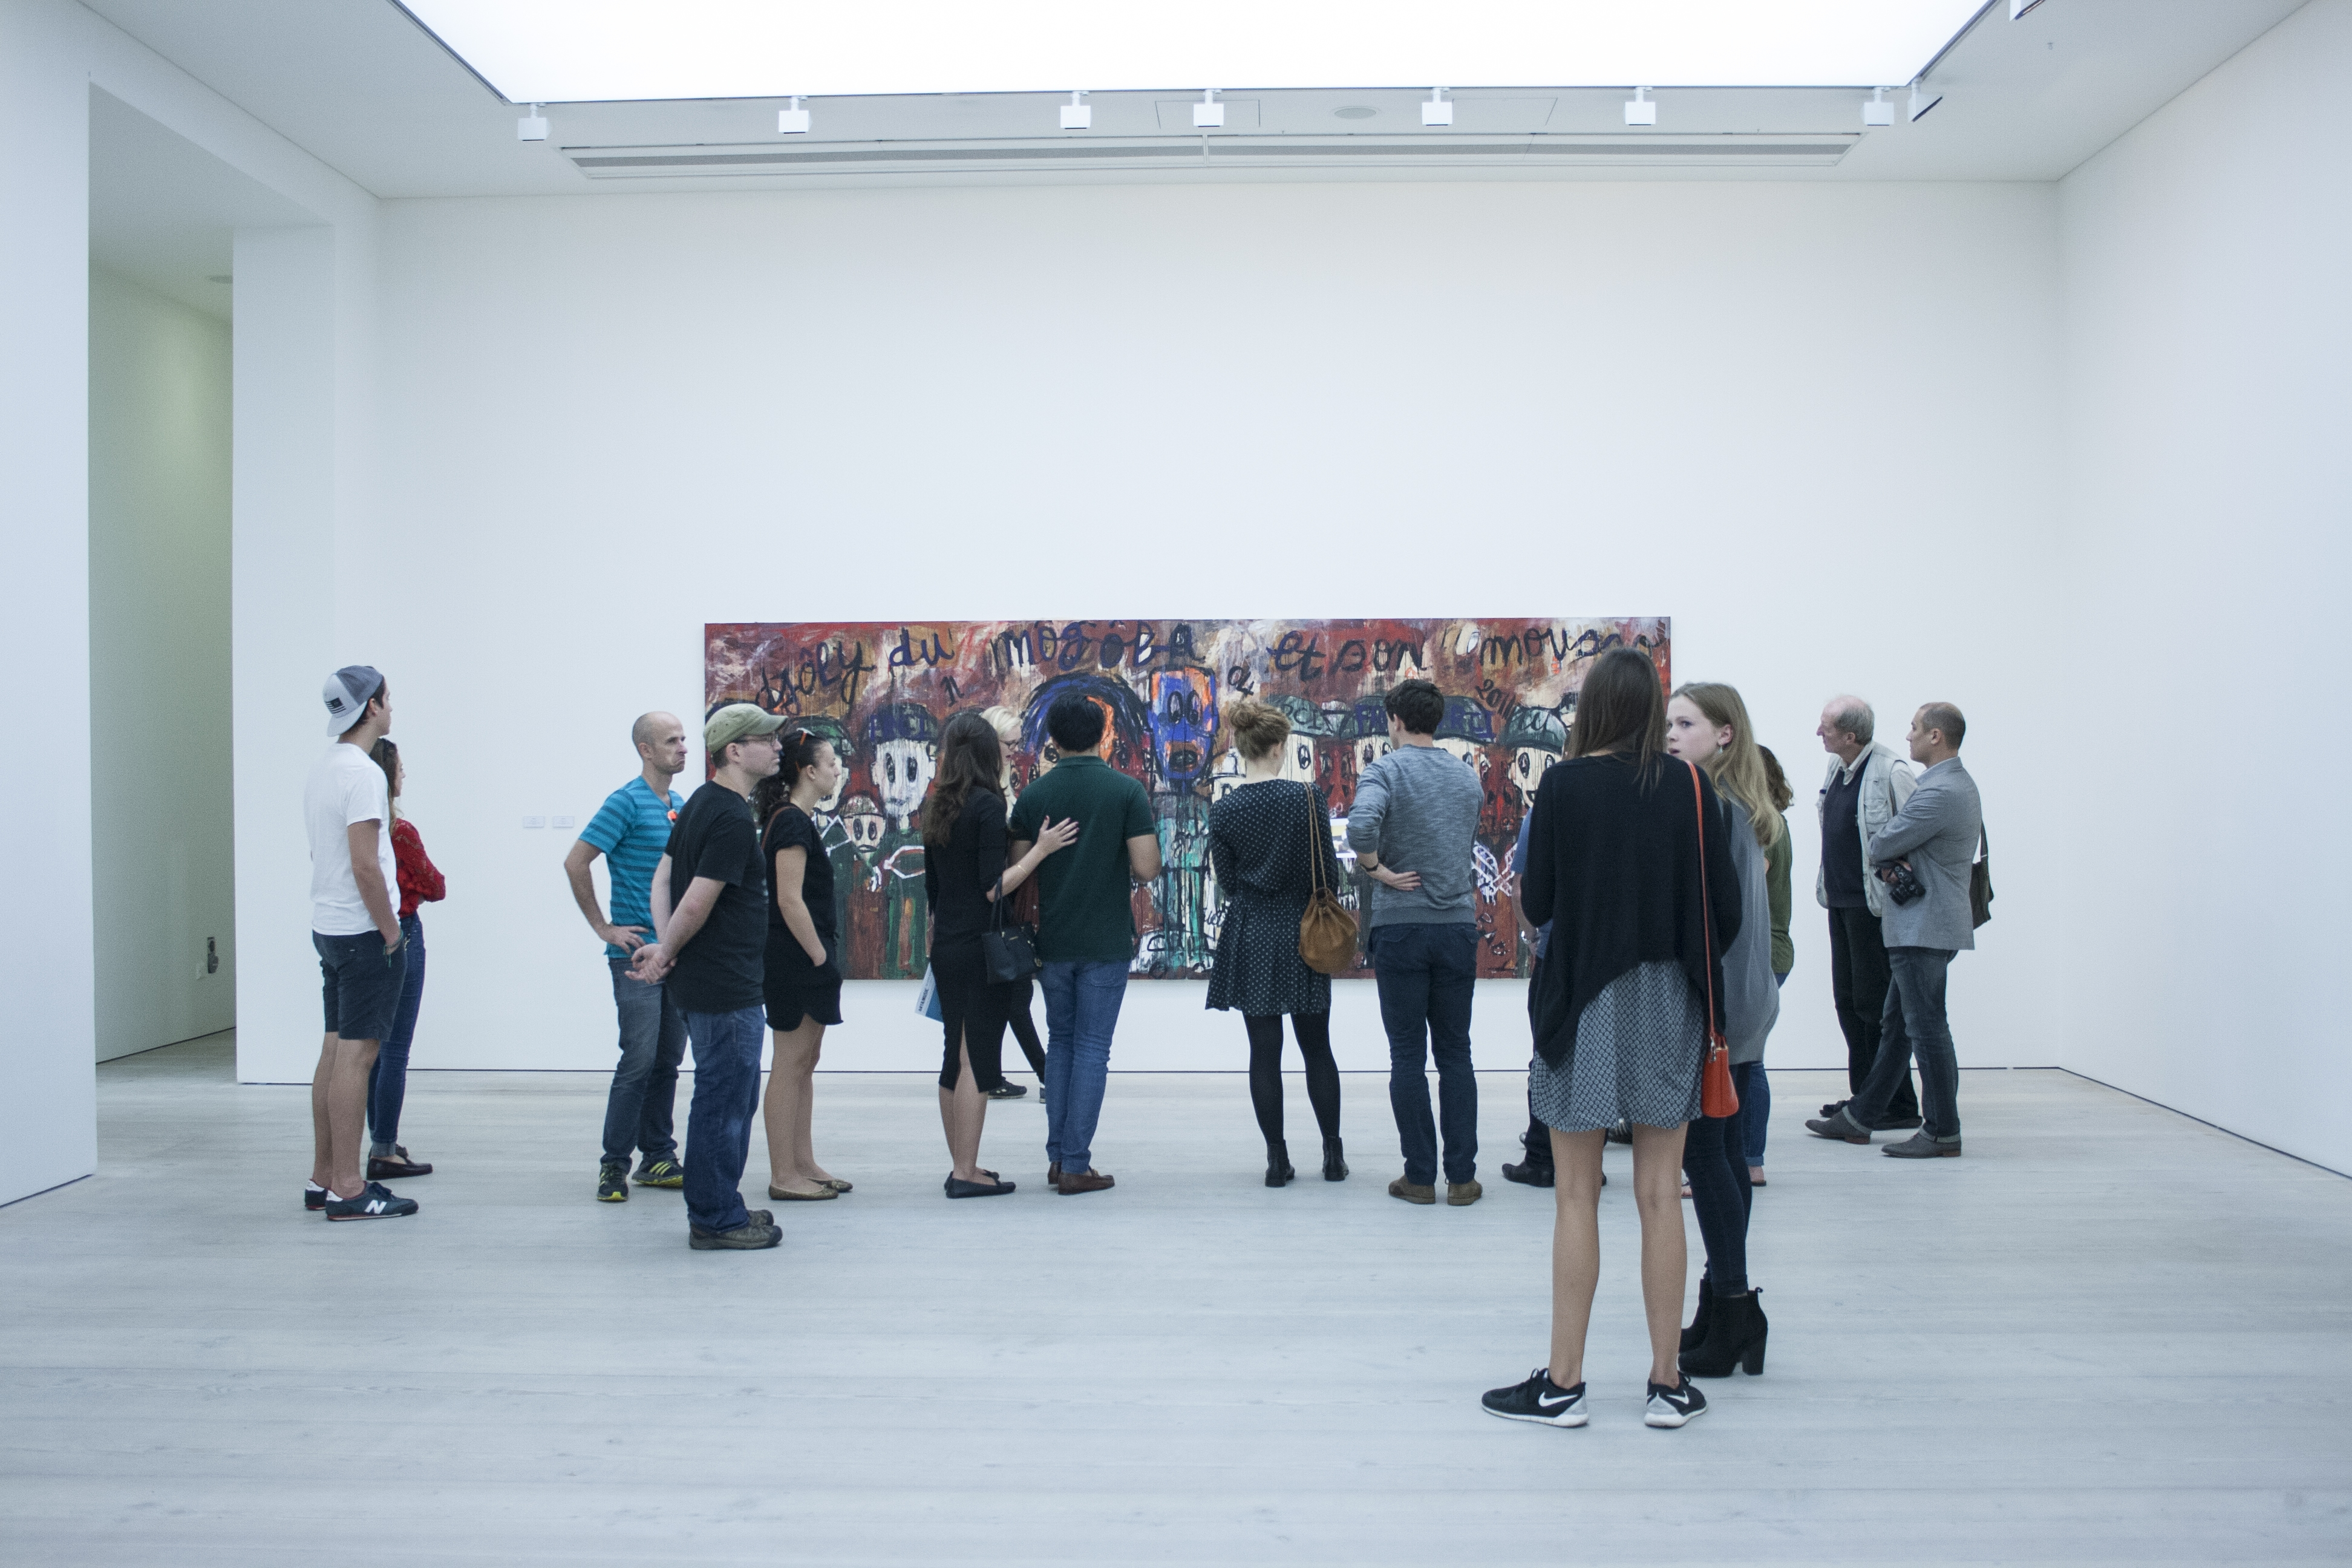 Photo of people in an art gallery